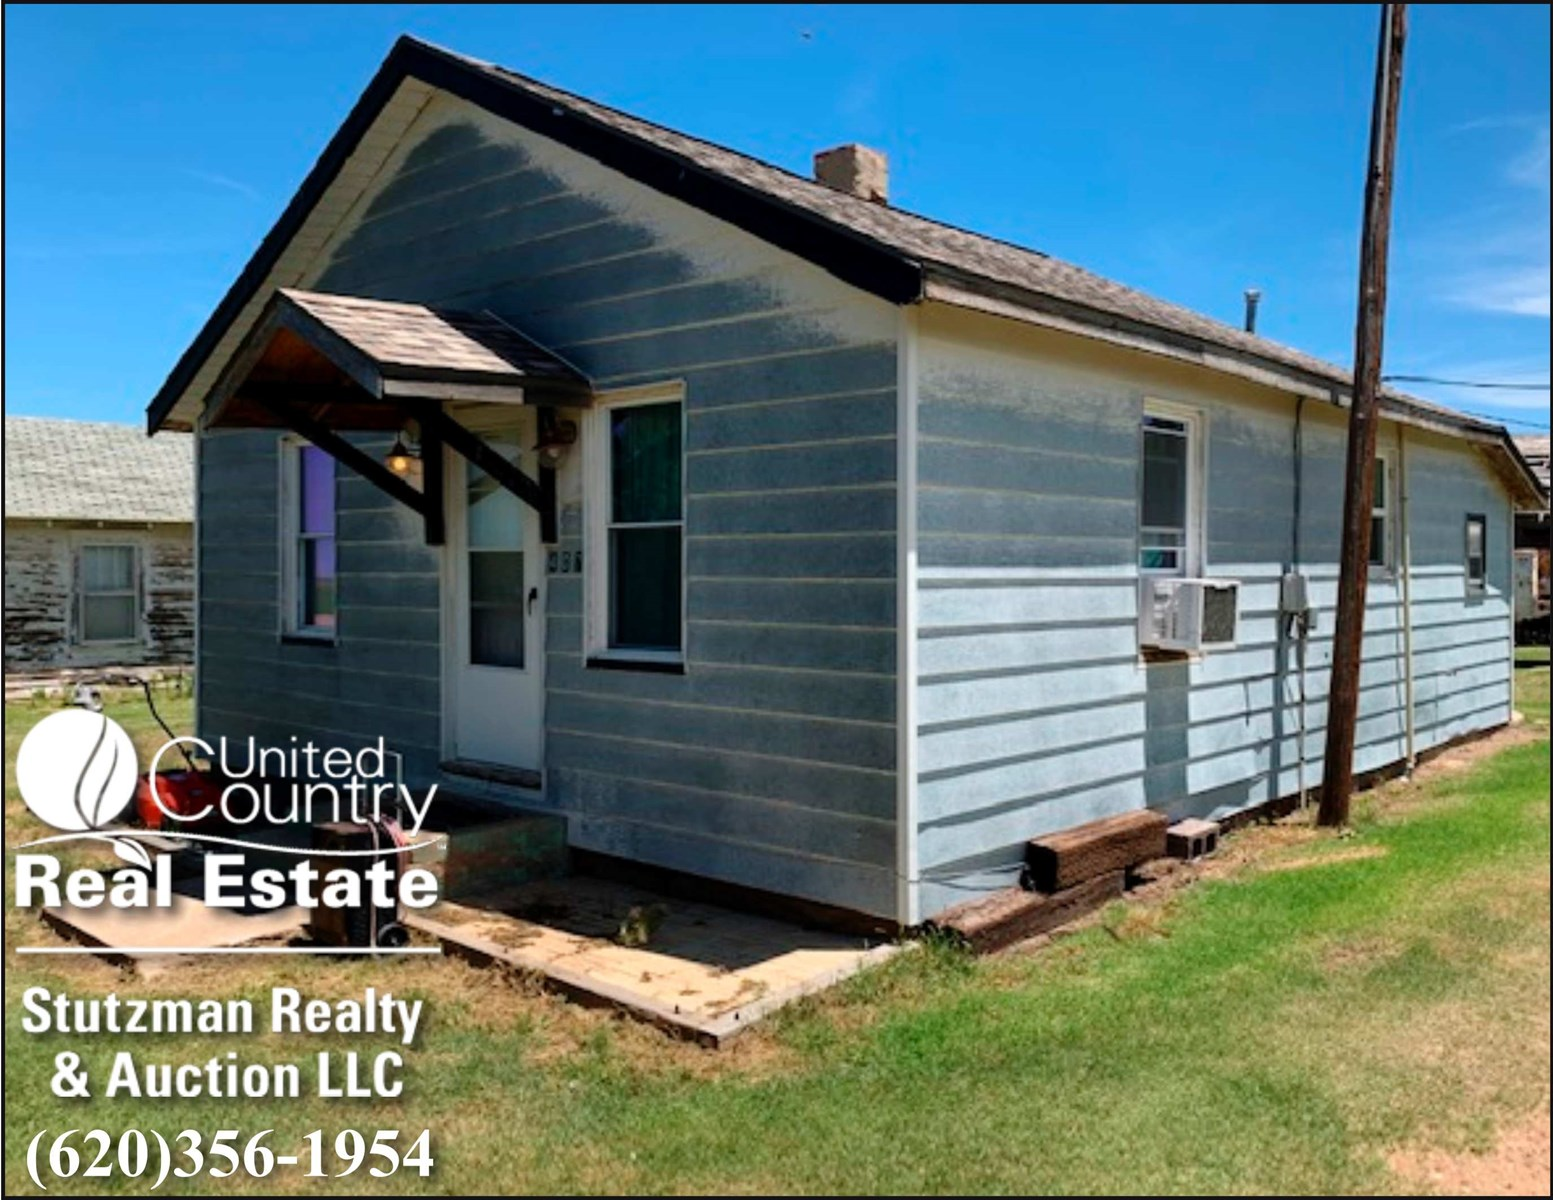 CHARMING HOME FOR SALE IN MANTER, KANSAS